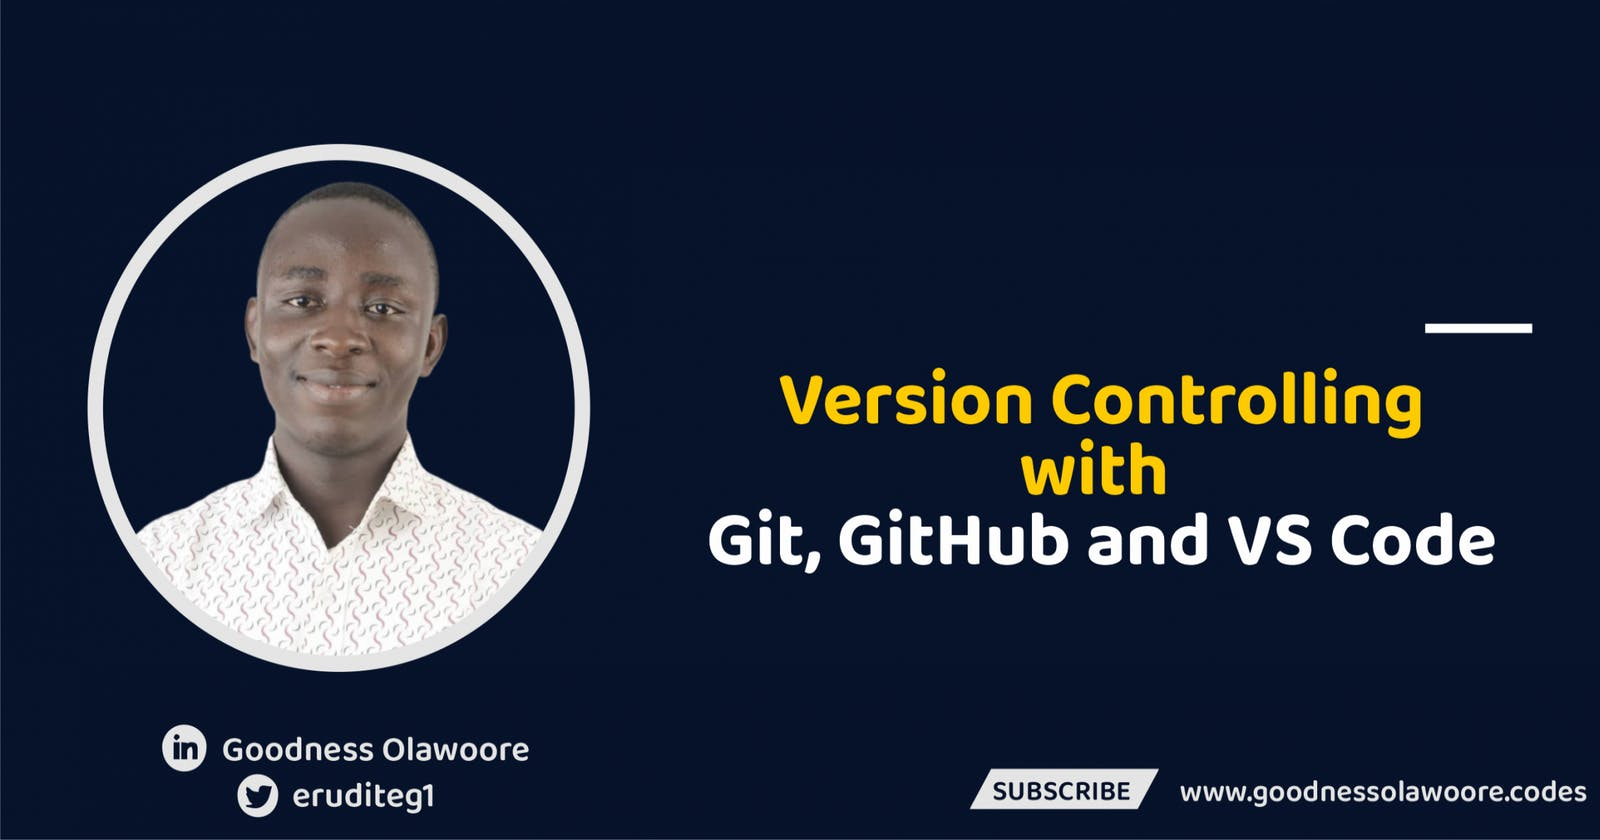 Version Controlling with Git, GitHub and VS Code